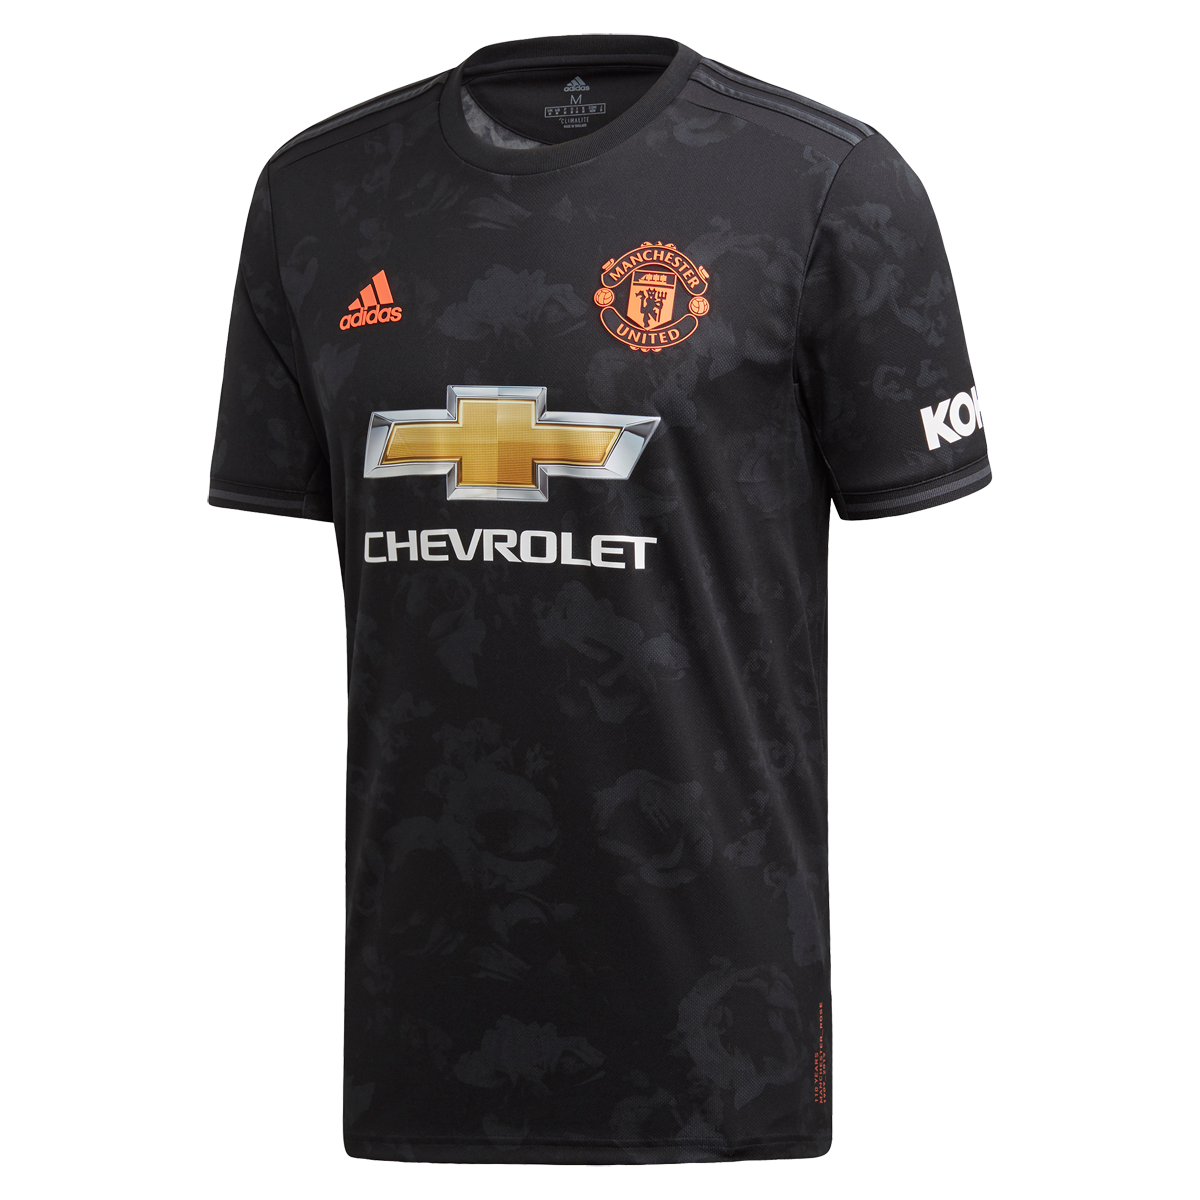 Adidas Manchester United Youth Third Jersey 19 20 Yxl Manchester United Fans Manchester United Manchester United Youth